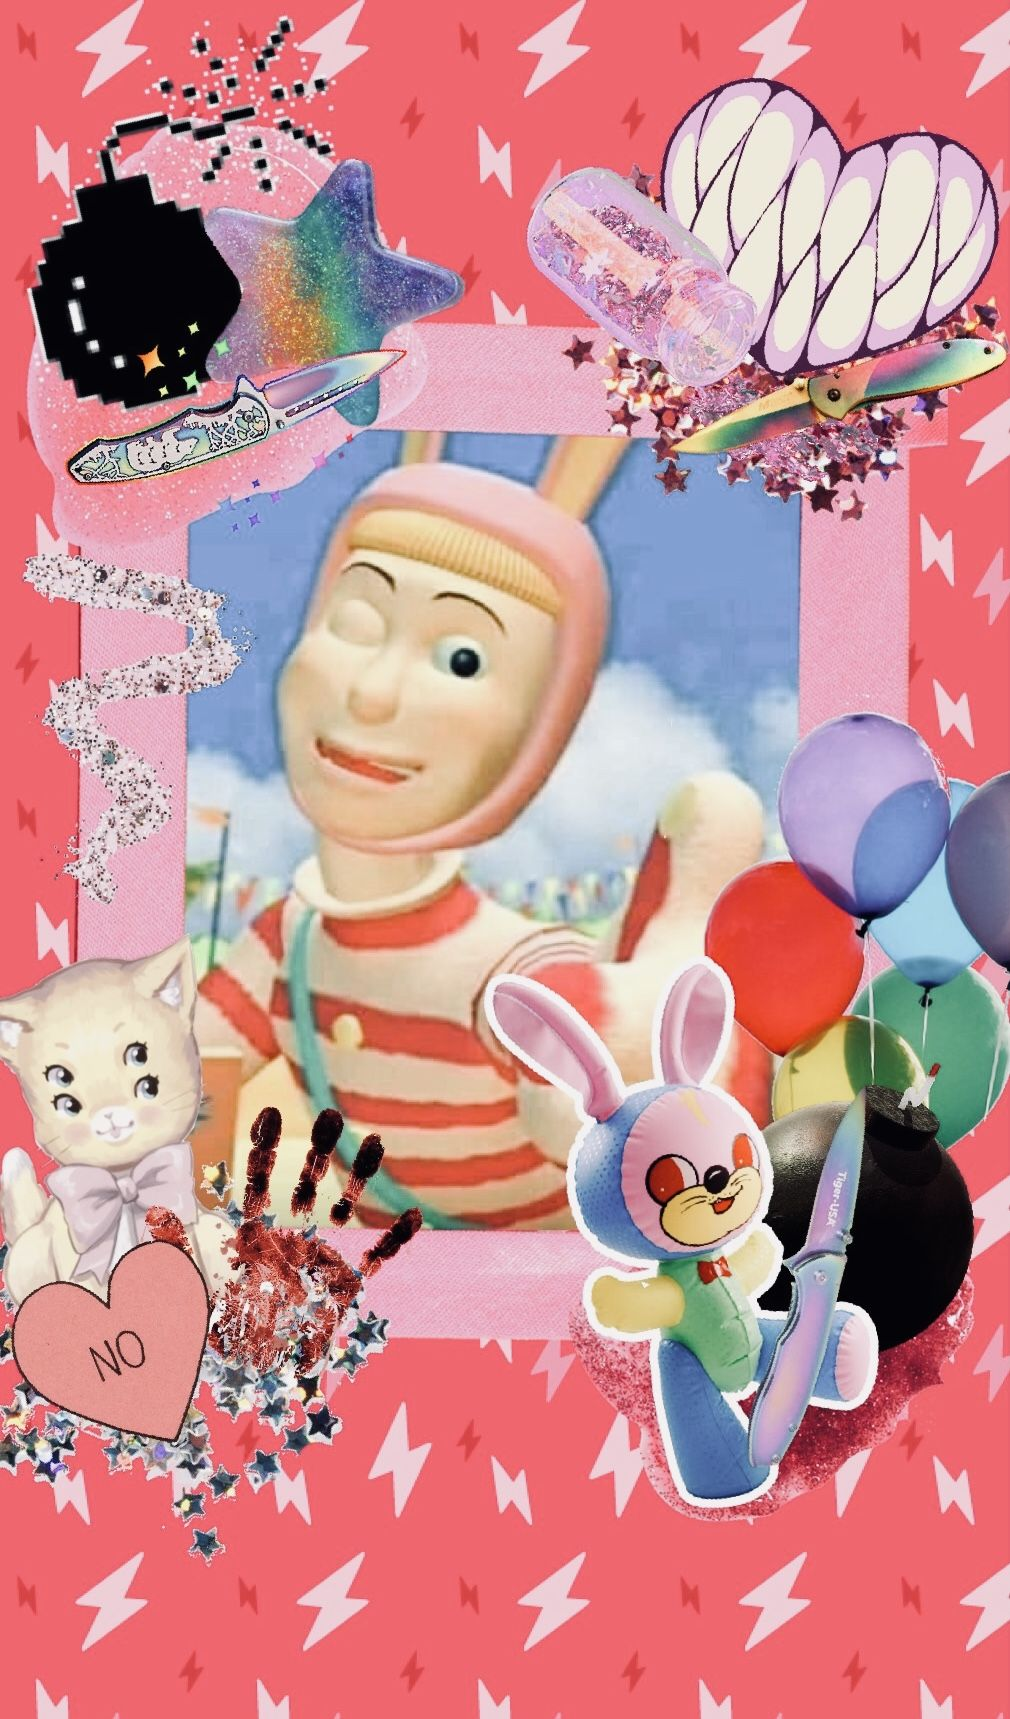 Popee The Performer By Babyrainbowbear Popee The Performer Performance Anime Wallpaper